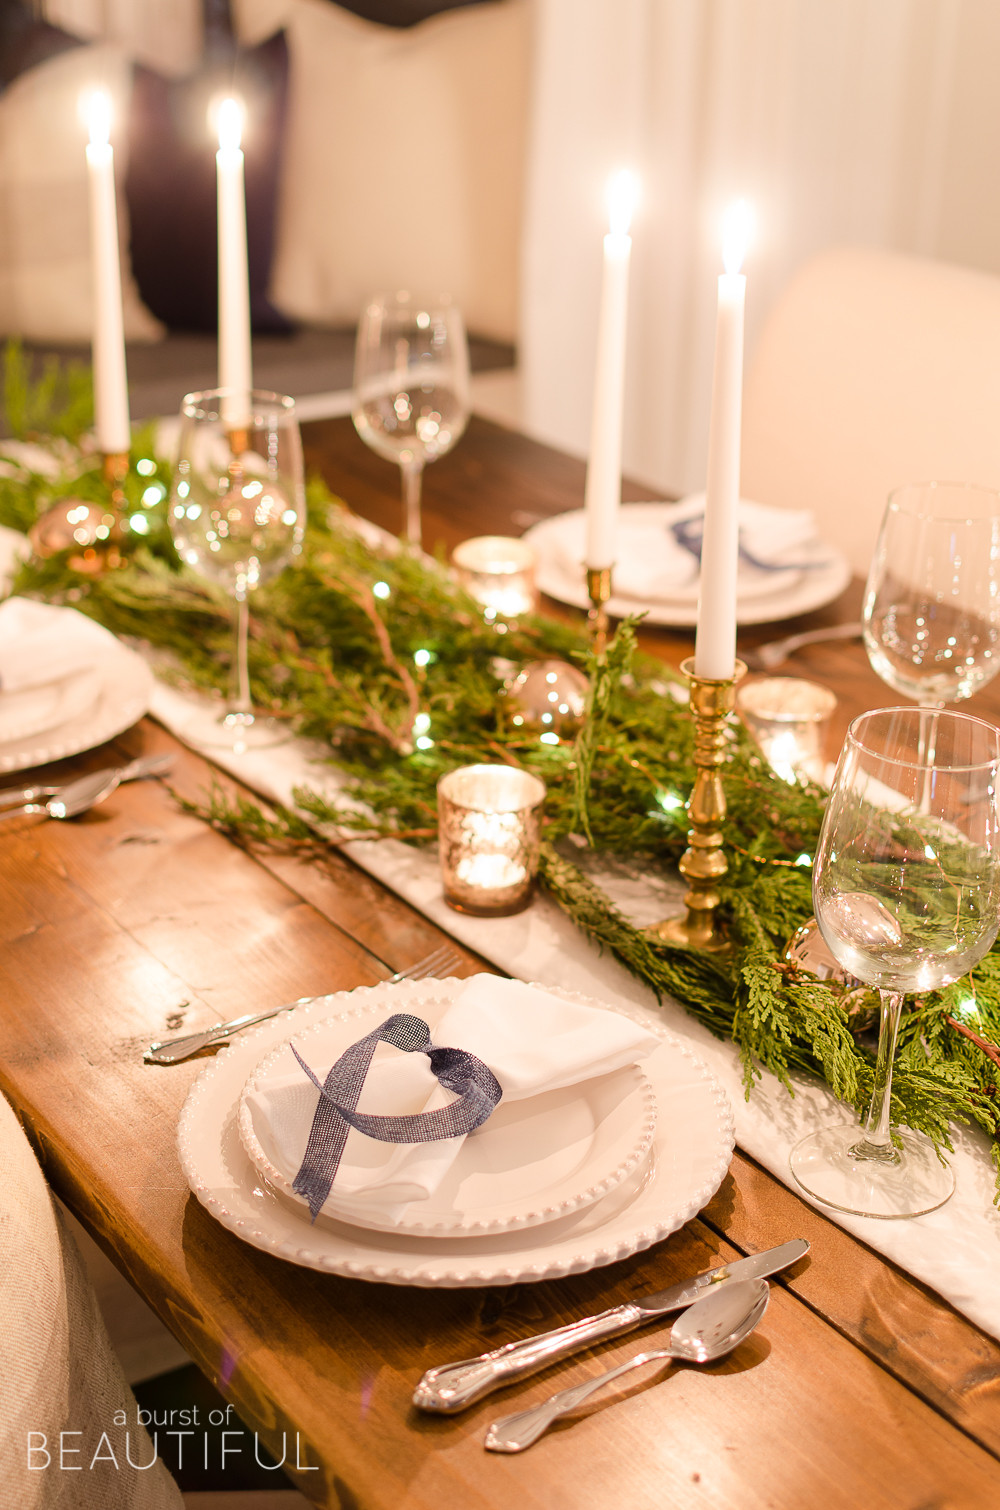 Dinner Table Decorating  15 Christmas Dinner Table Decoration Ideas For Your